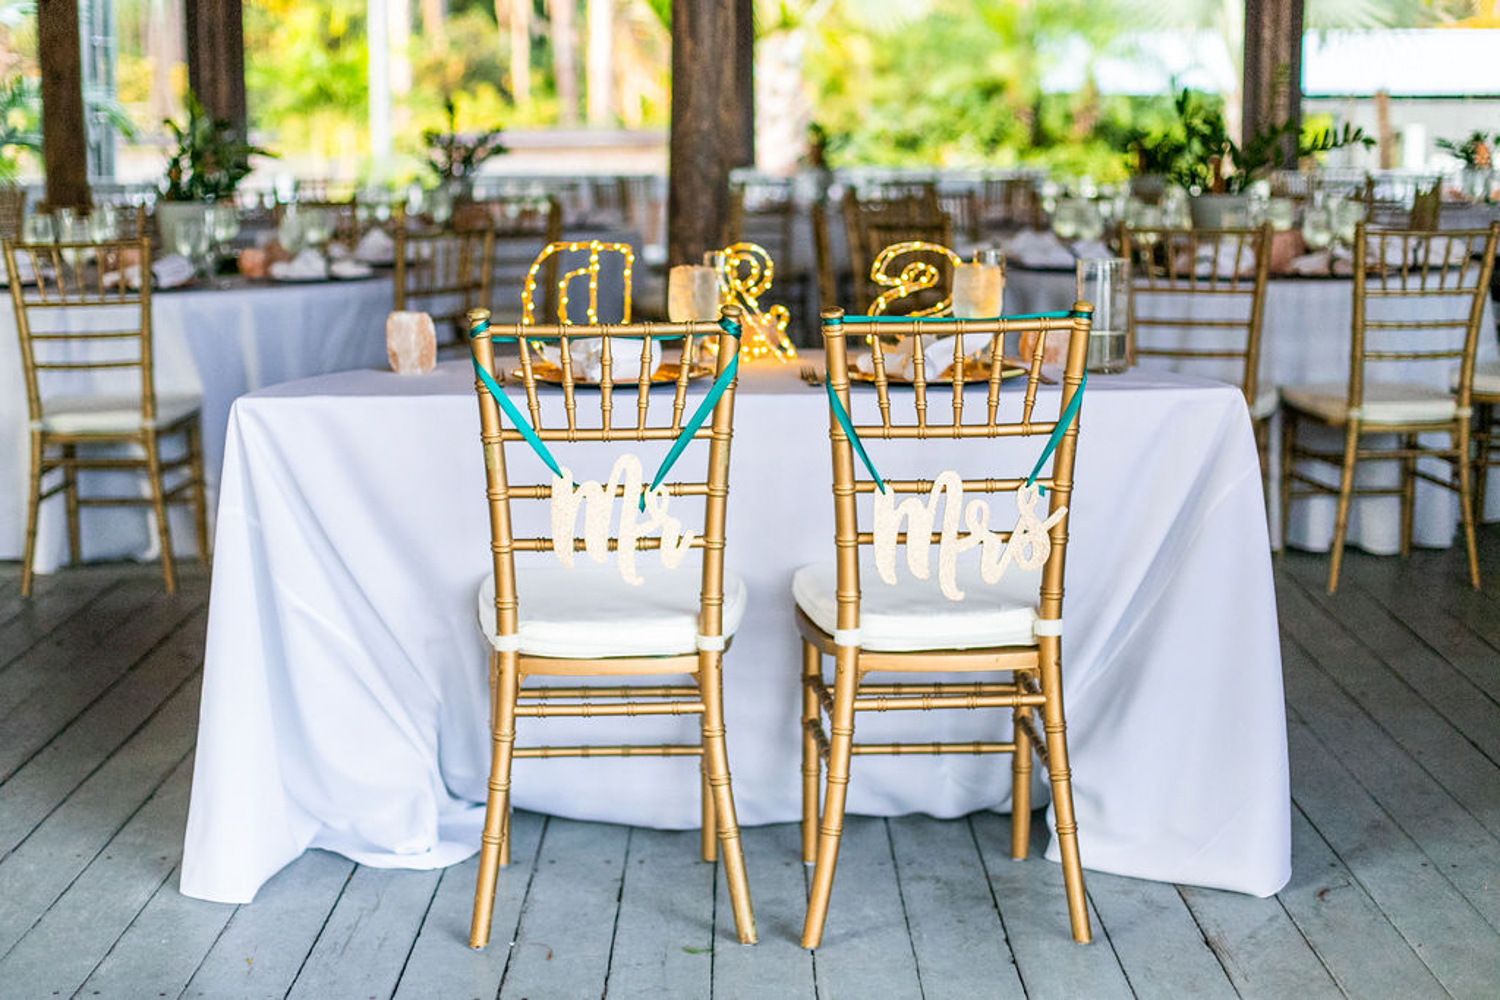 gold chiavari chairs with mr and mrs signs for Paradise Cove wedding reception